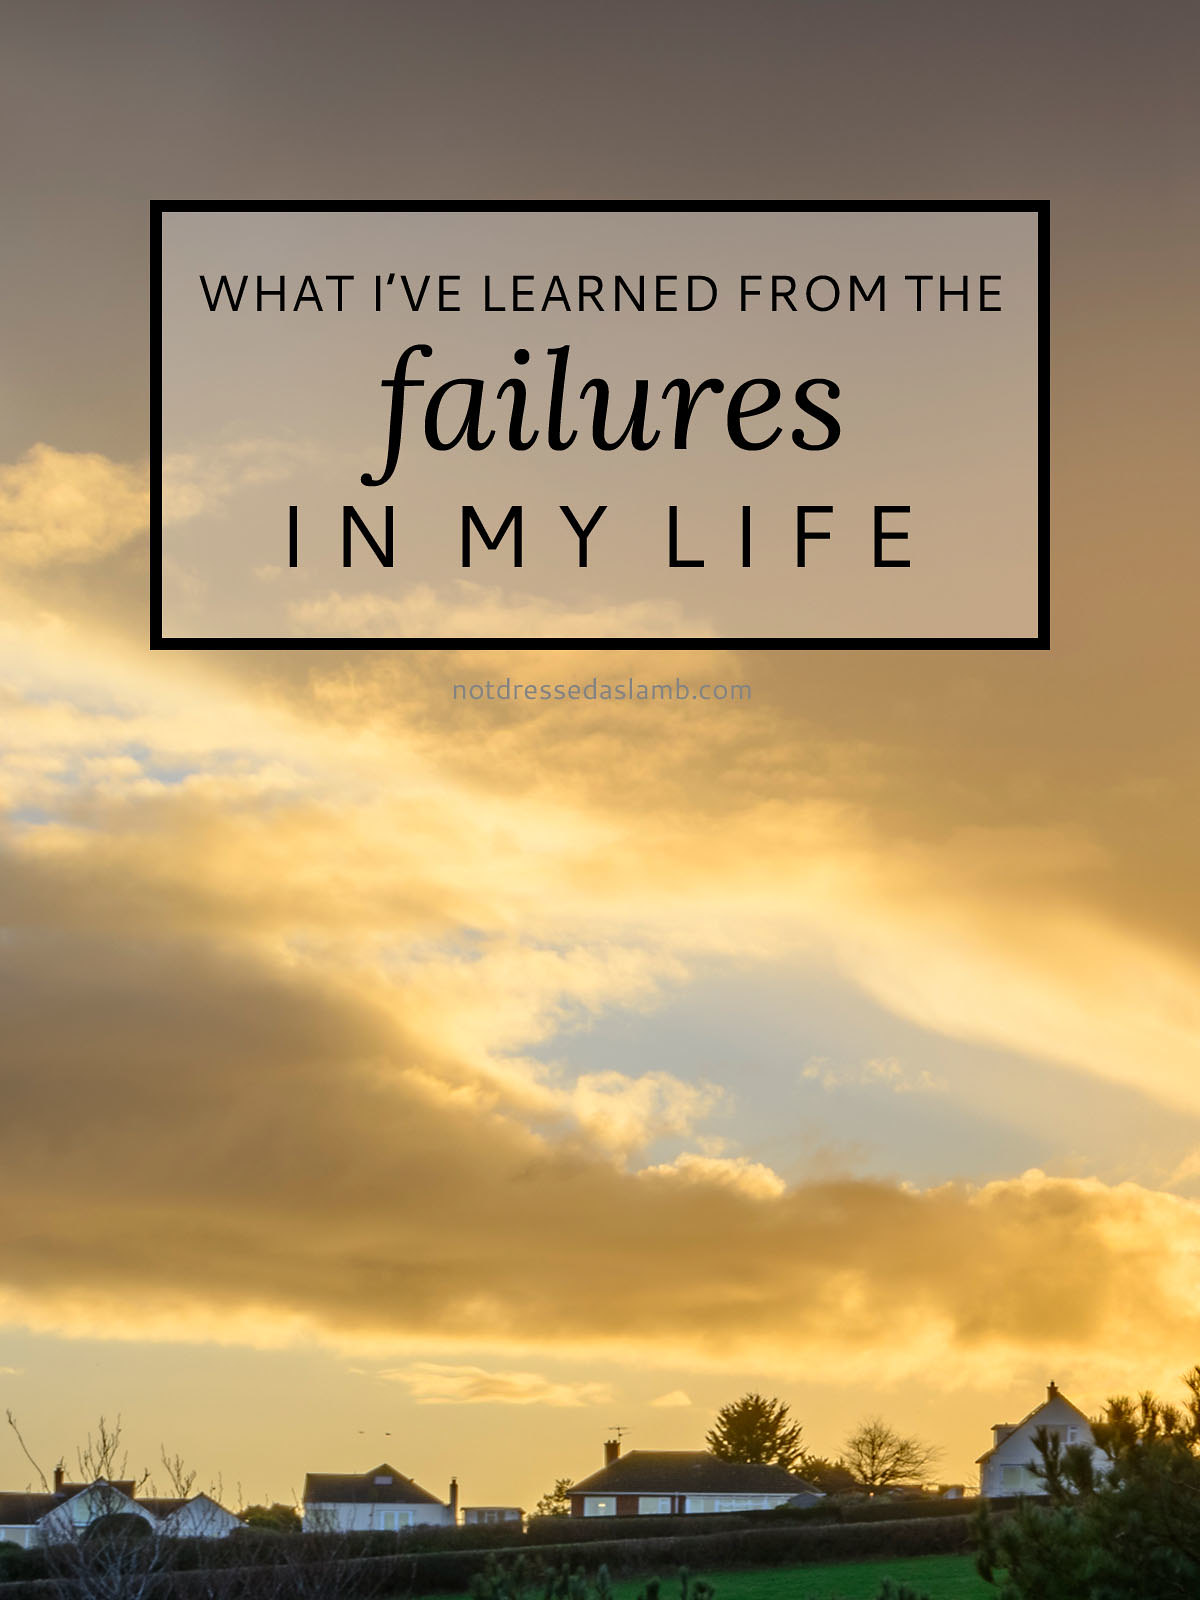 What I've learned from the failures in my life | Not Dressed As Lamb